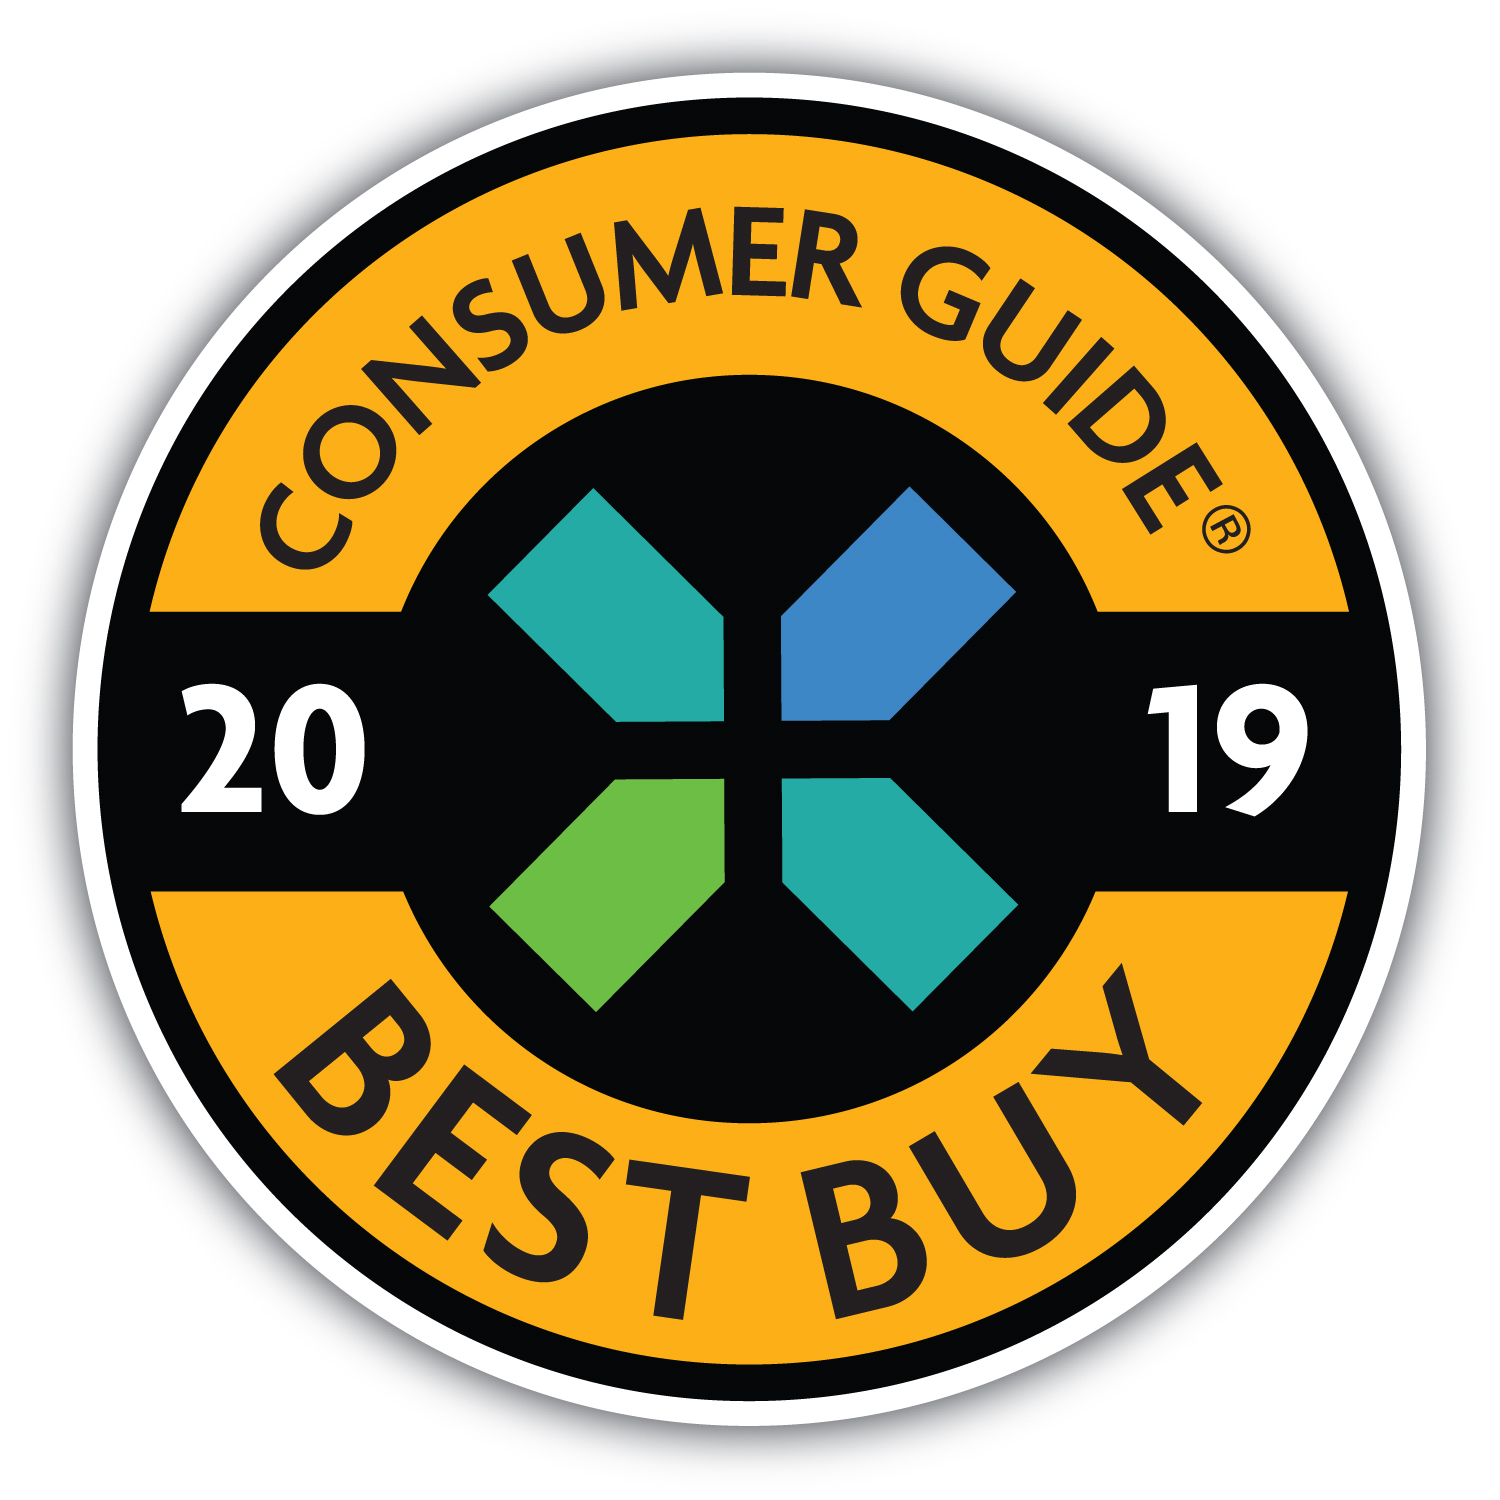 2019 Consumer Guide Best Buys